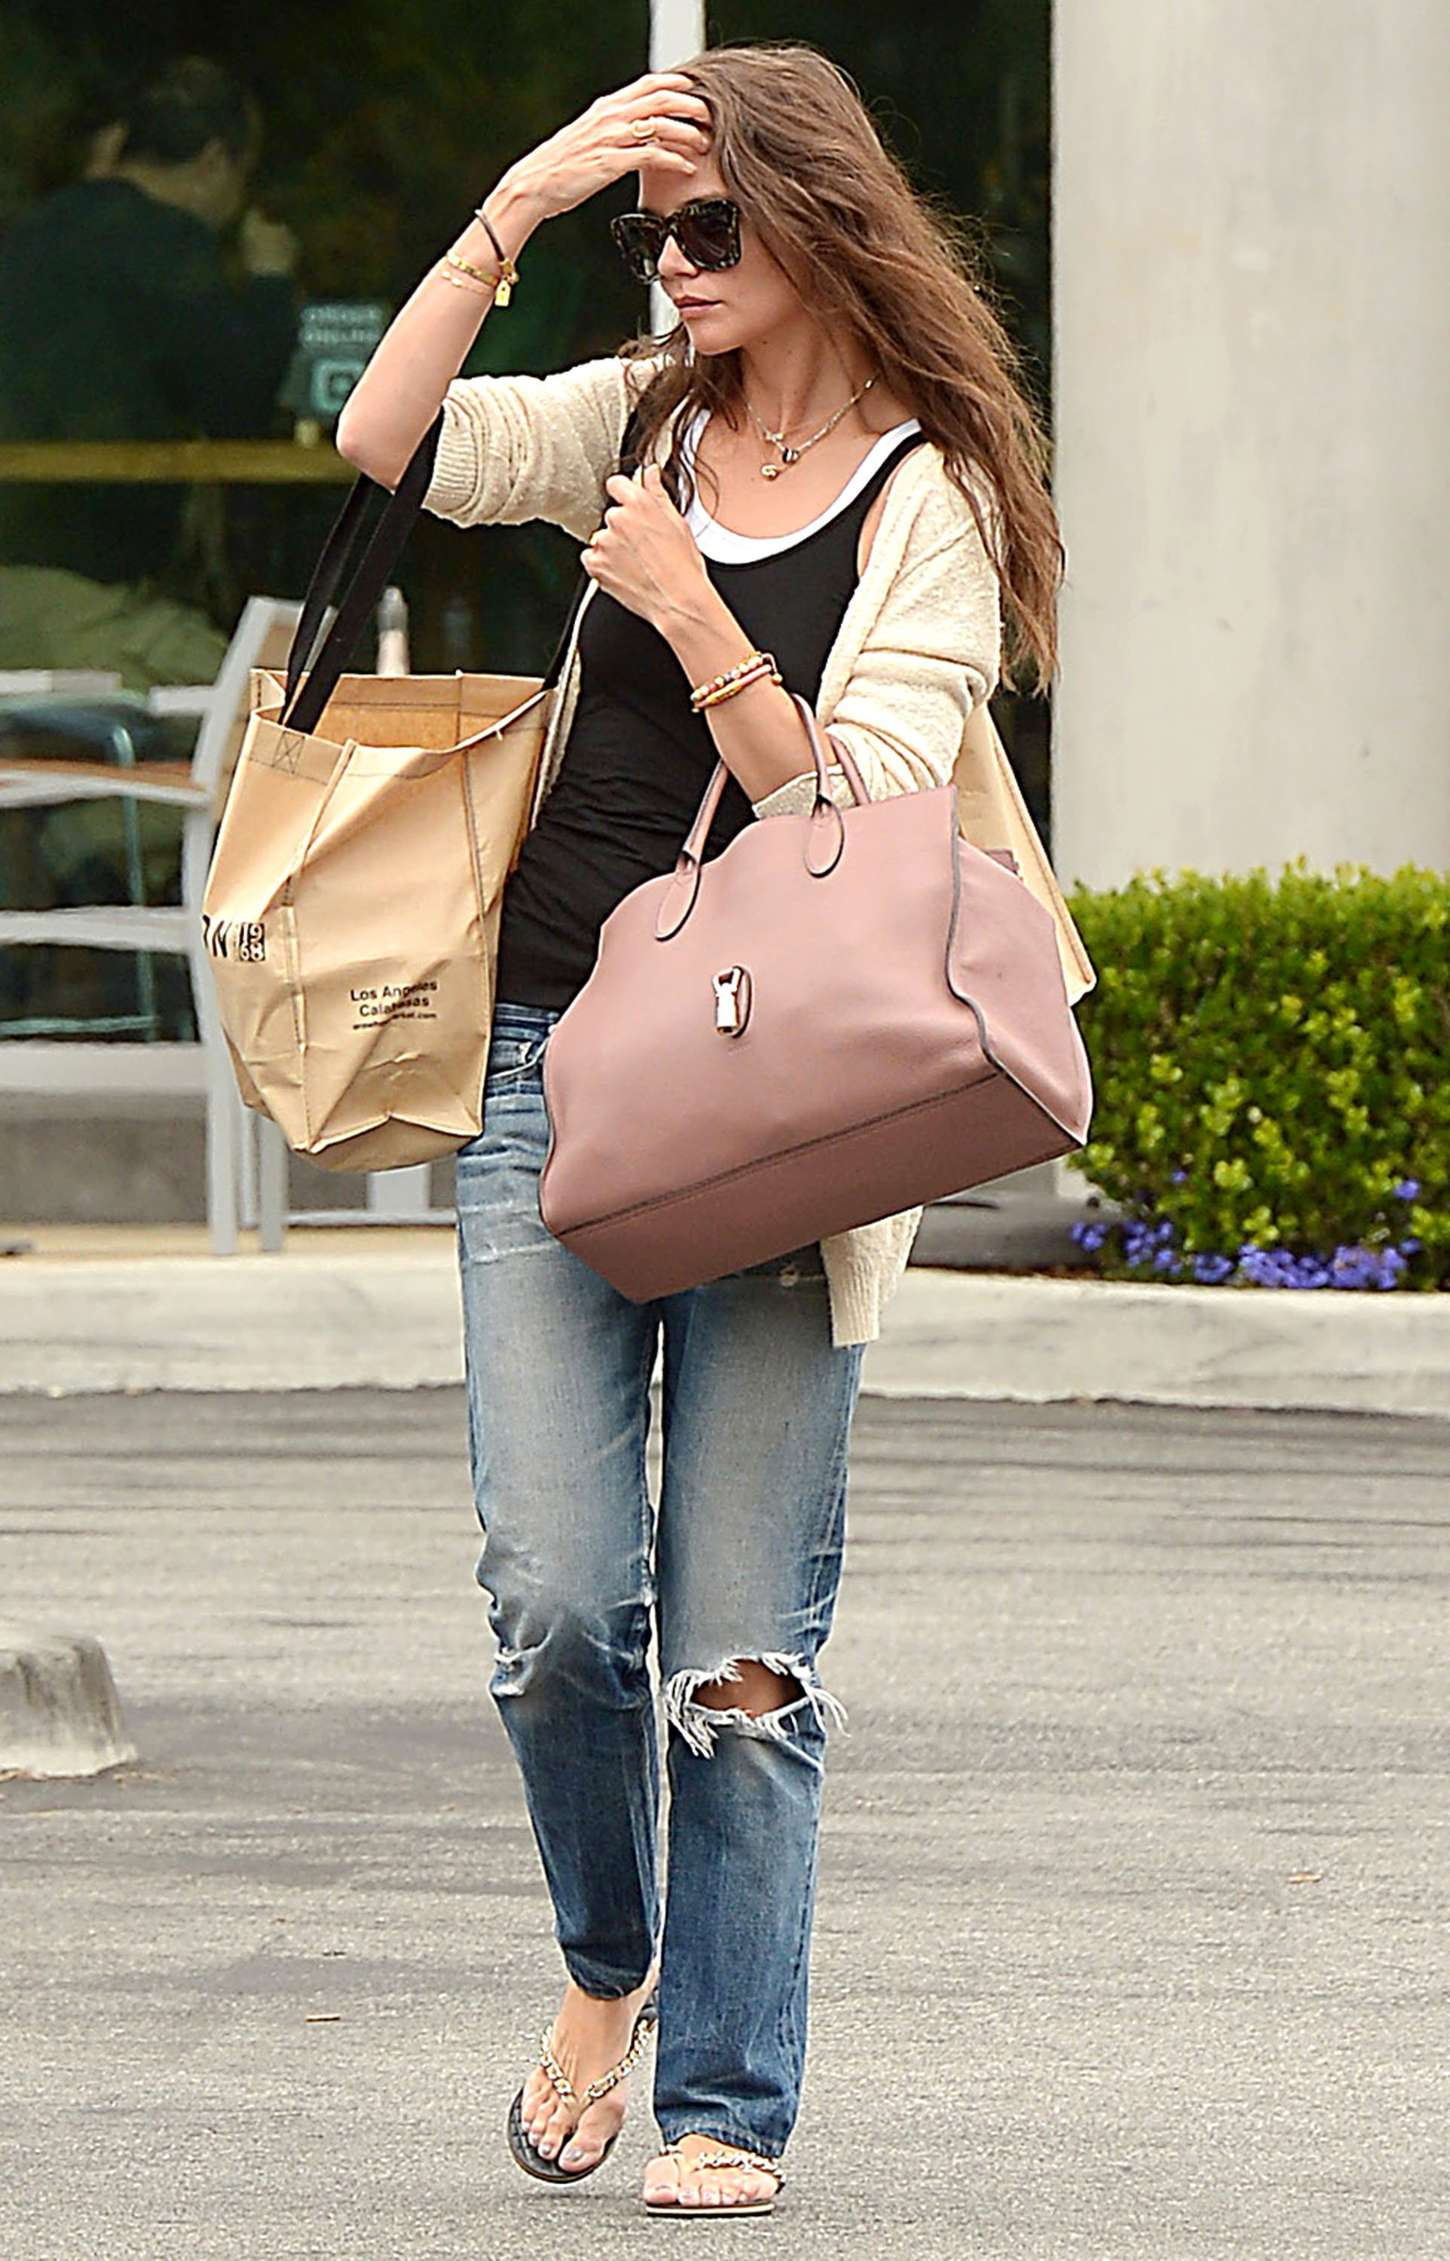 Katie Holmes 2015 : Katie Holmes in Jeans at Whole Foods -05